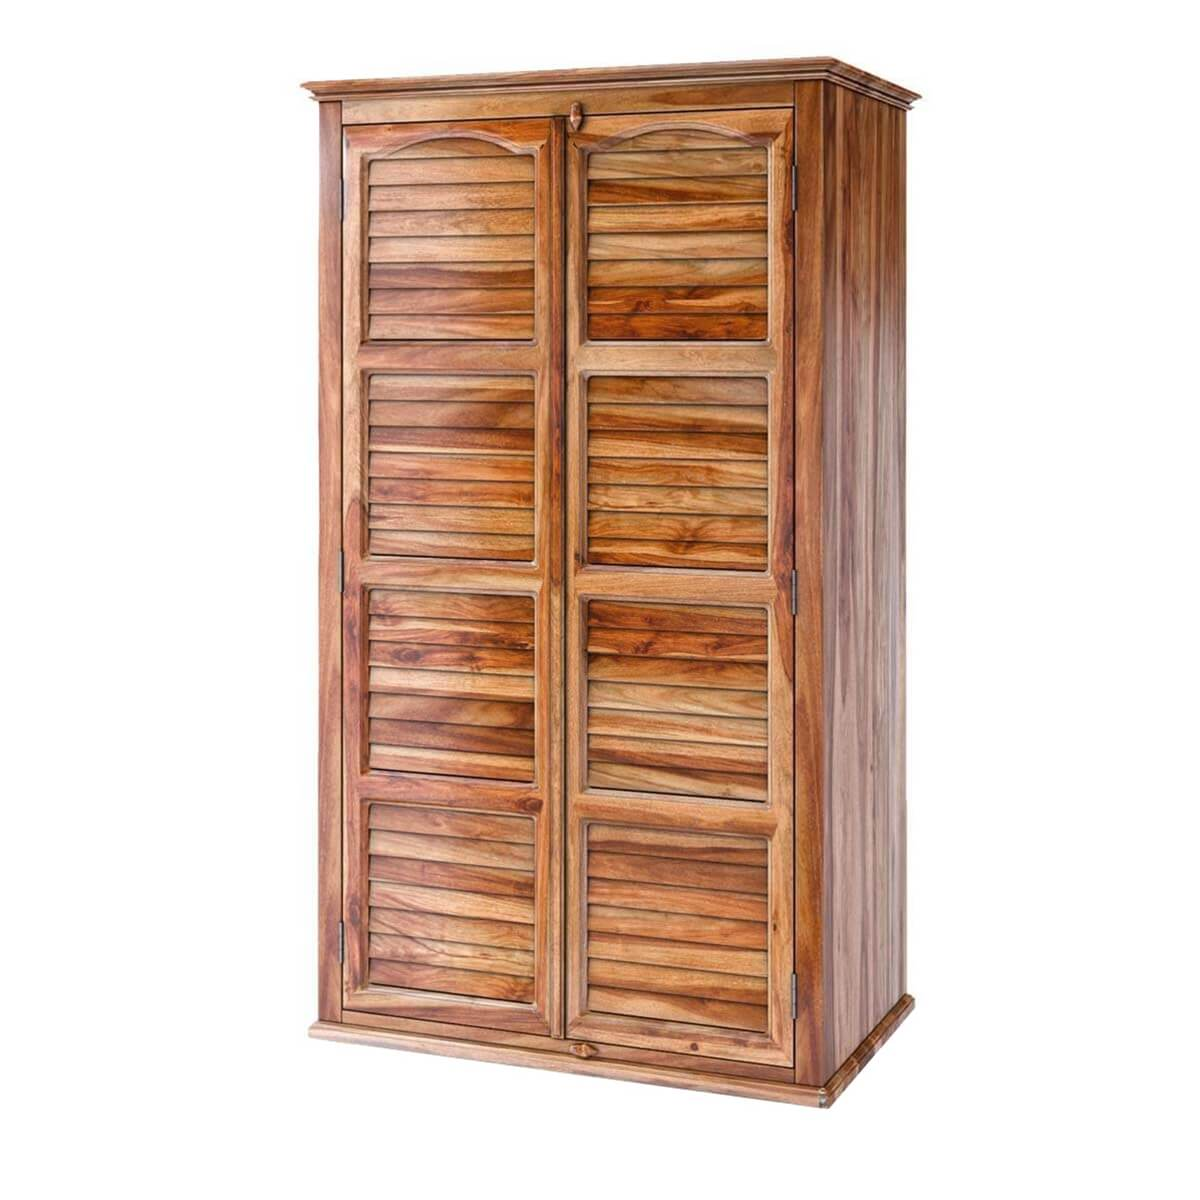 Livingston Louvered Door Rustic Solid Wood Large Armoire With Drawers